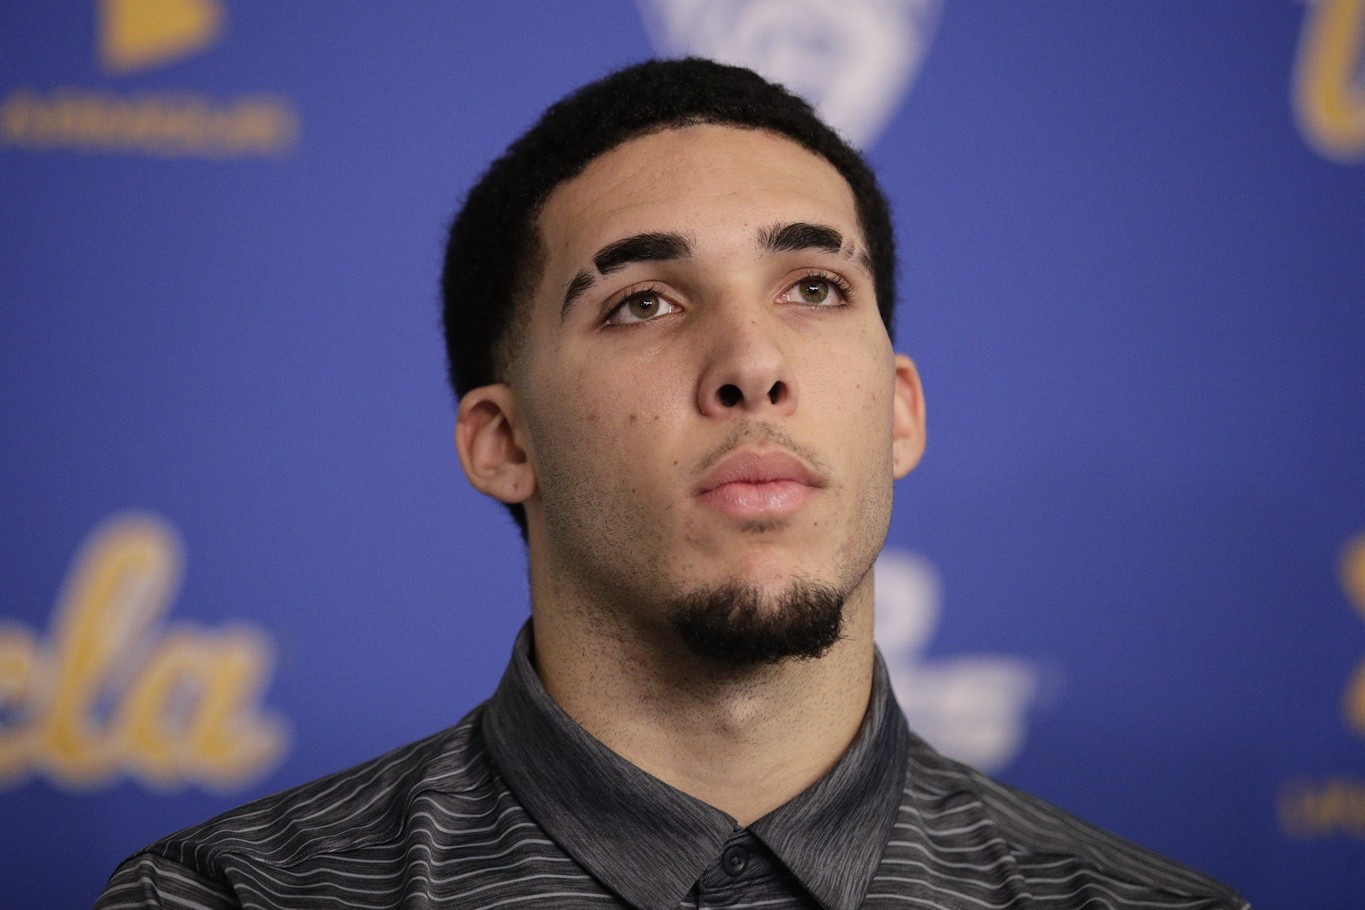 LaVar Ball pulls Lonzo Ball's brother LiAngelo Ball from UCLA